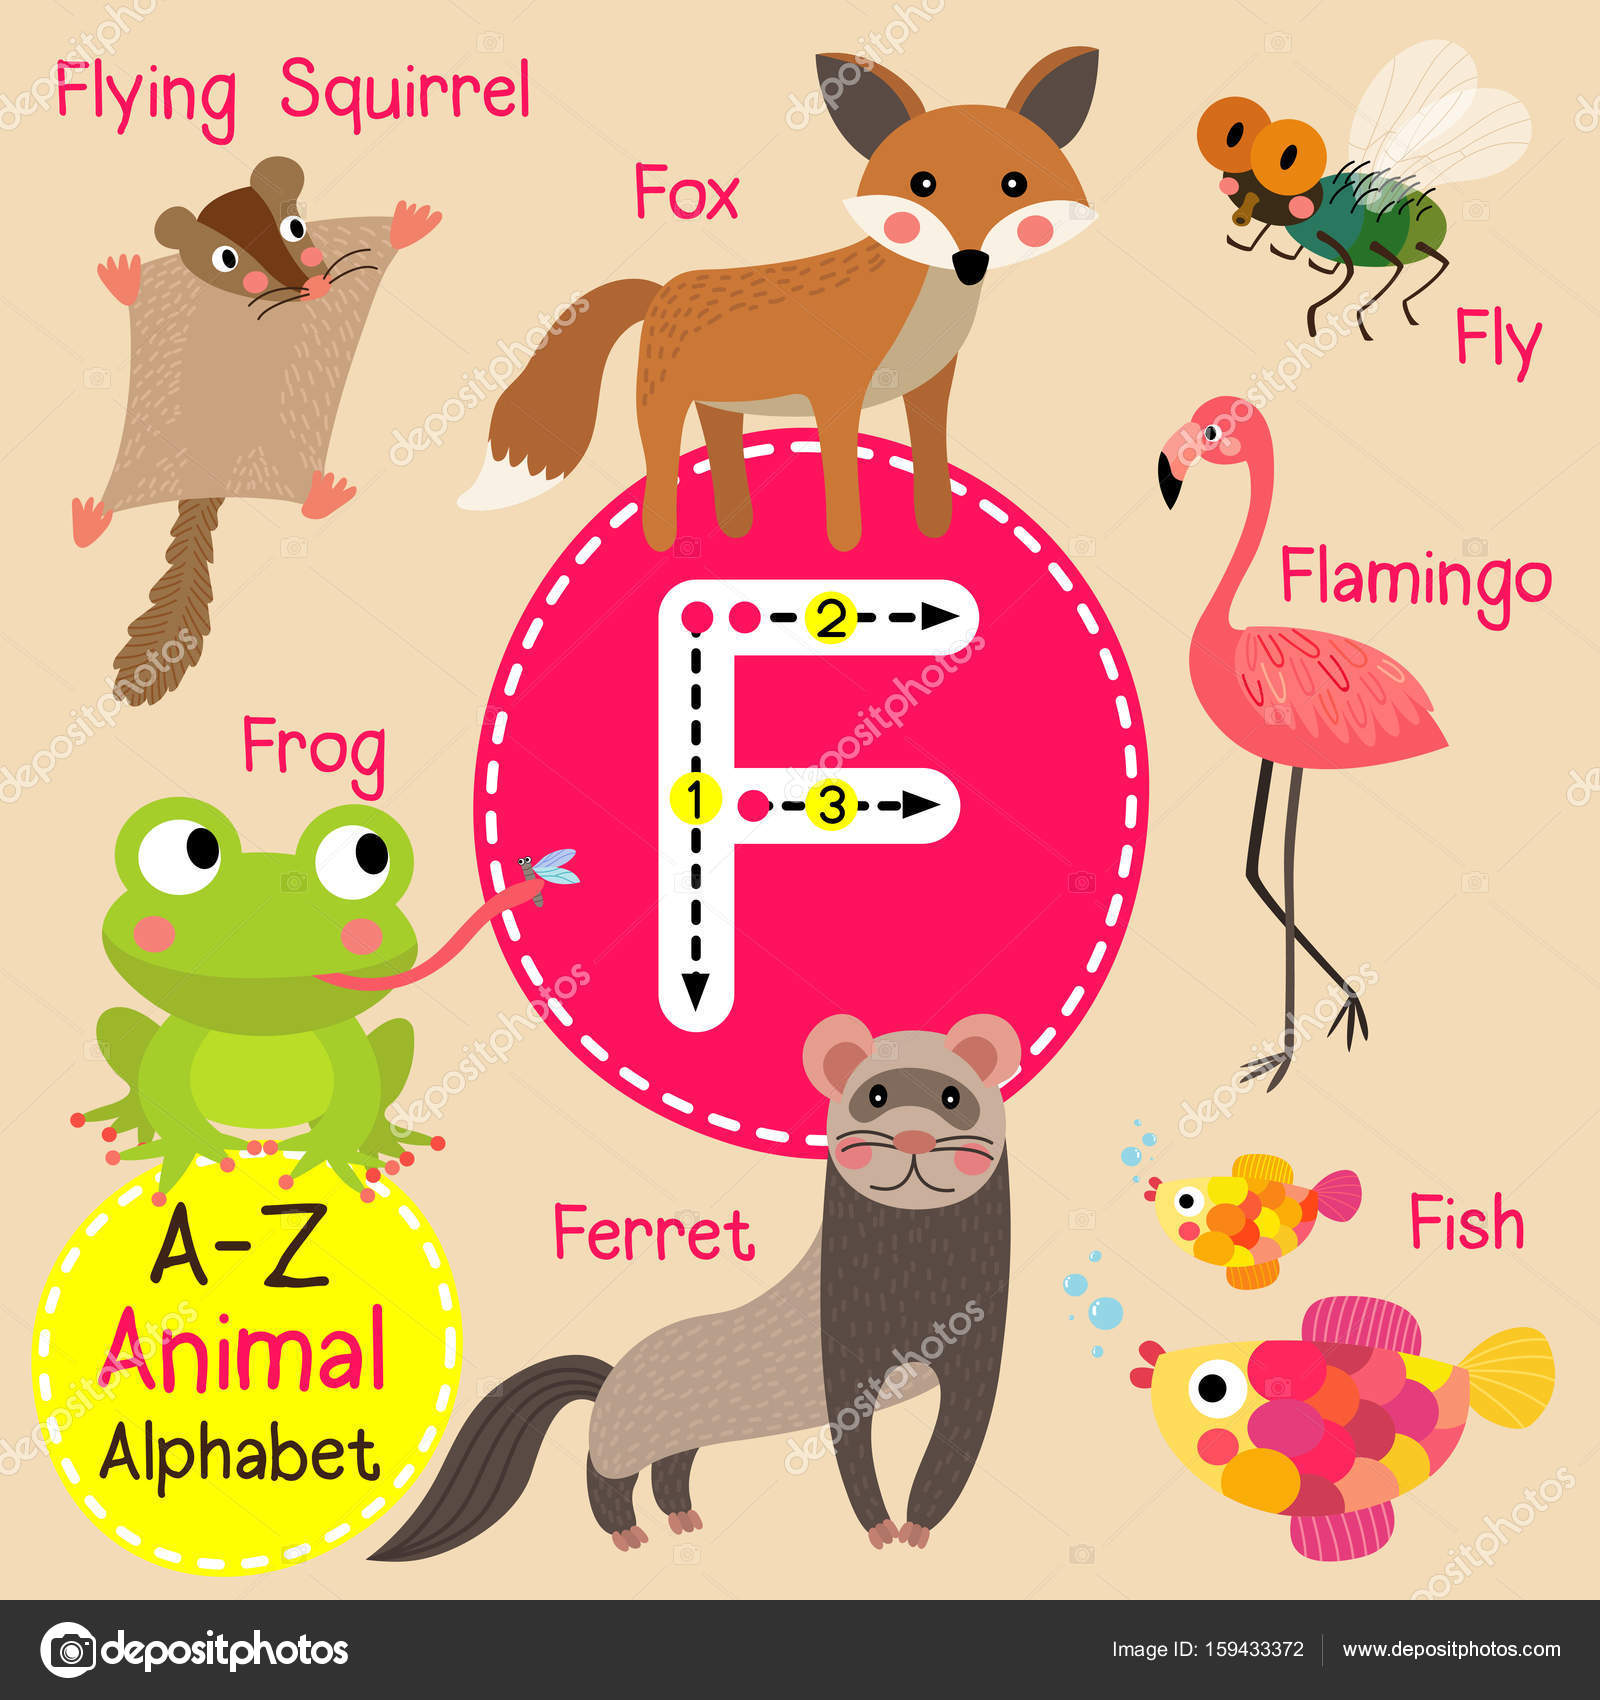 Flying Squirrel Stock Vectors Royalty Free Advanced Origami Fox Instructions Diagram Of The Cute Children Zoo Alphabet F Letter Tracing Funny Animal Cartoon For Kids Learning English Vocabulary